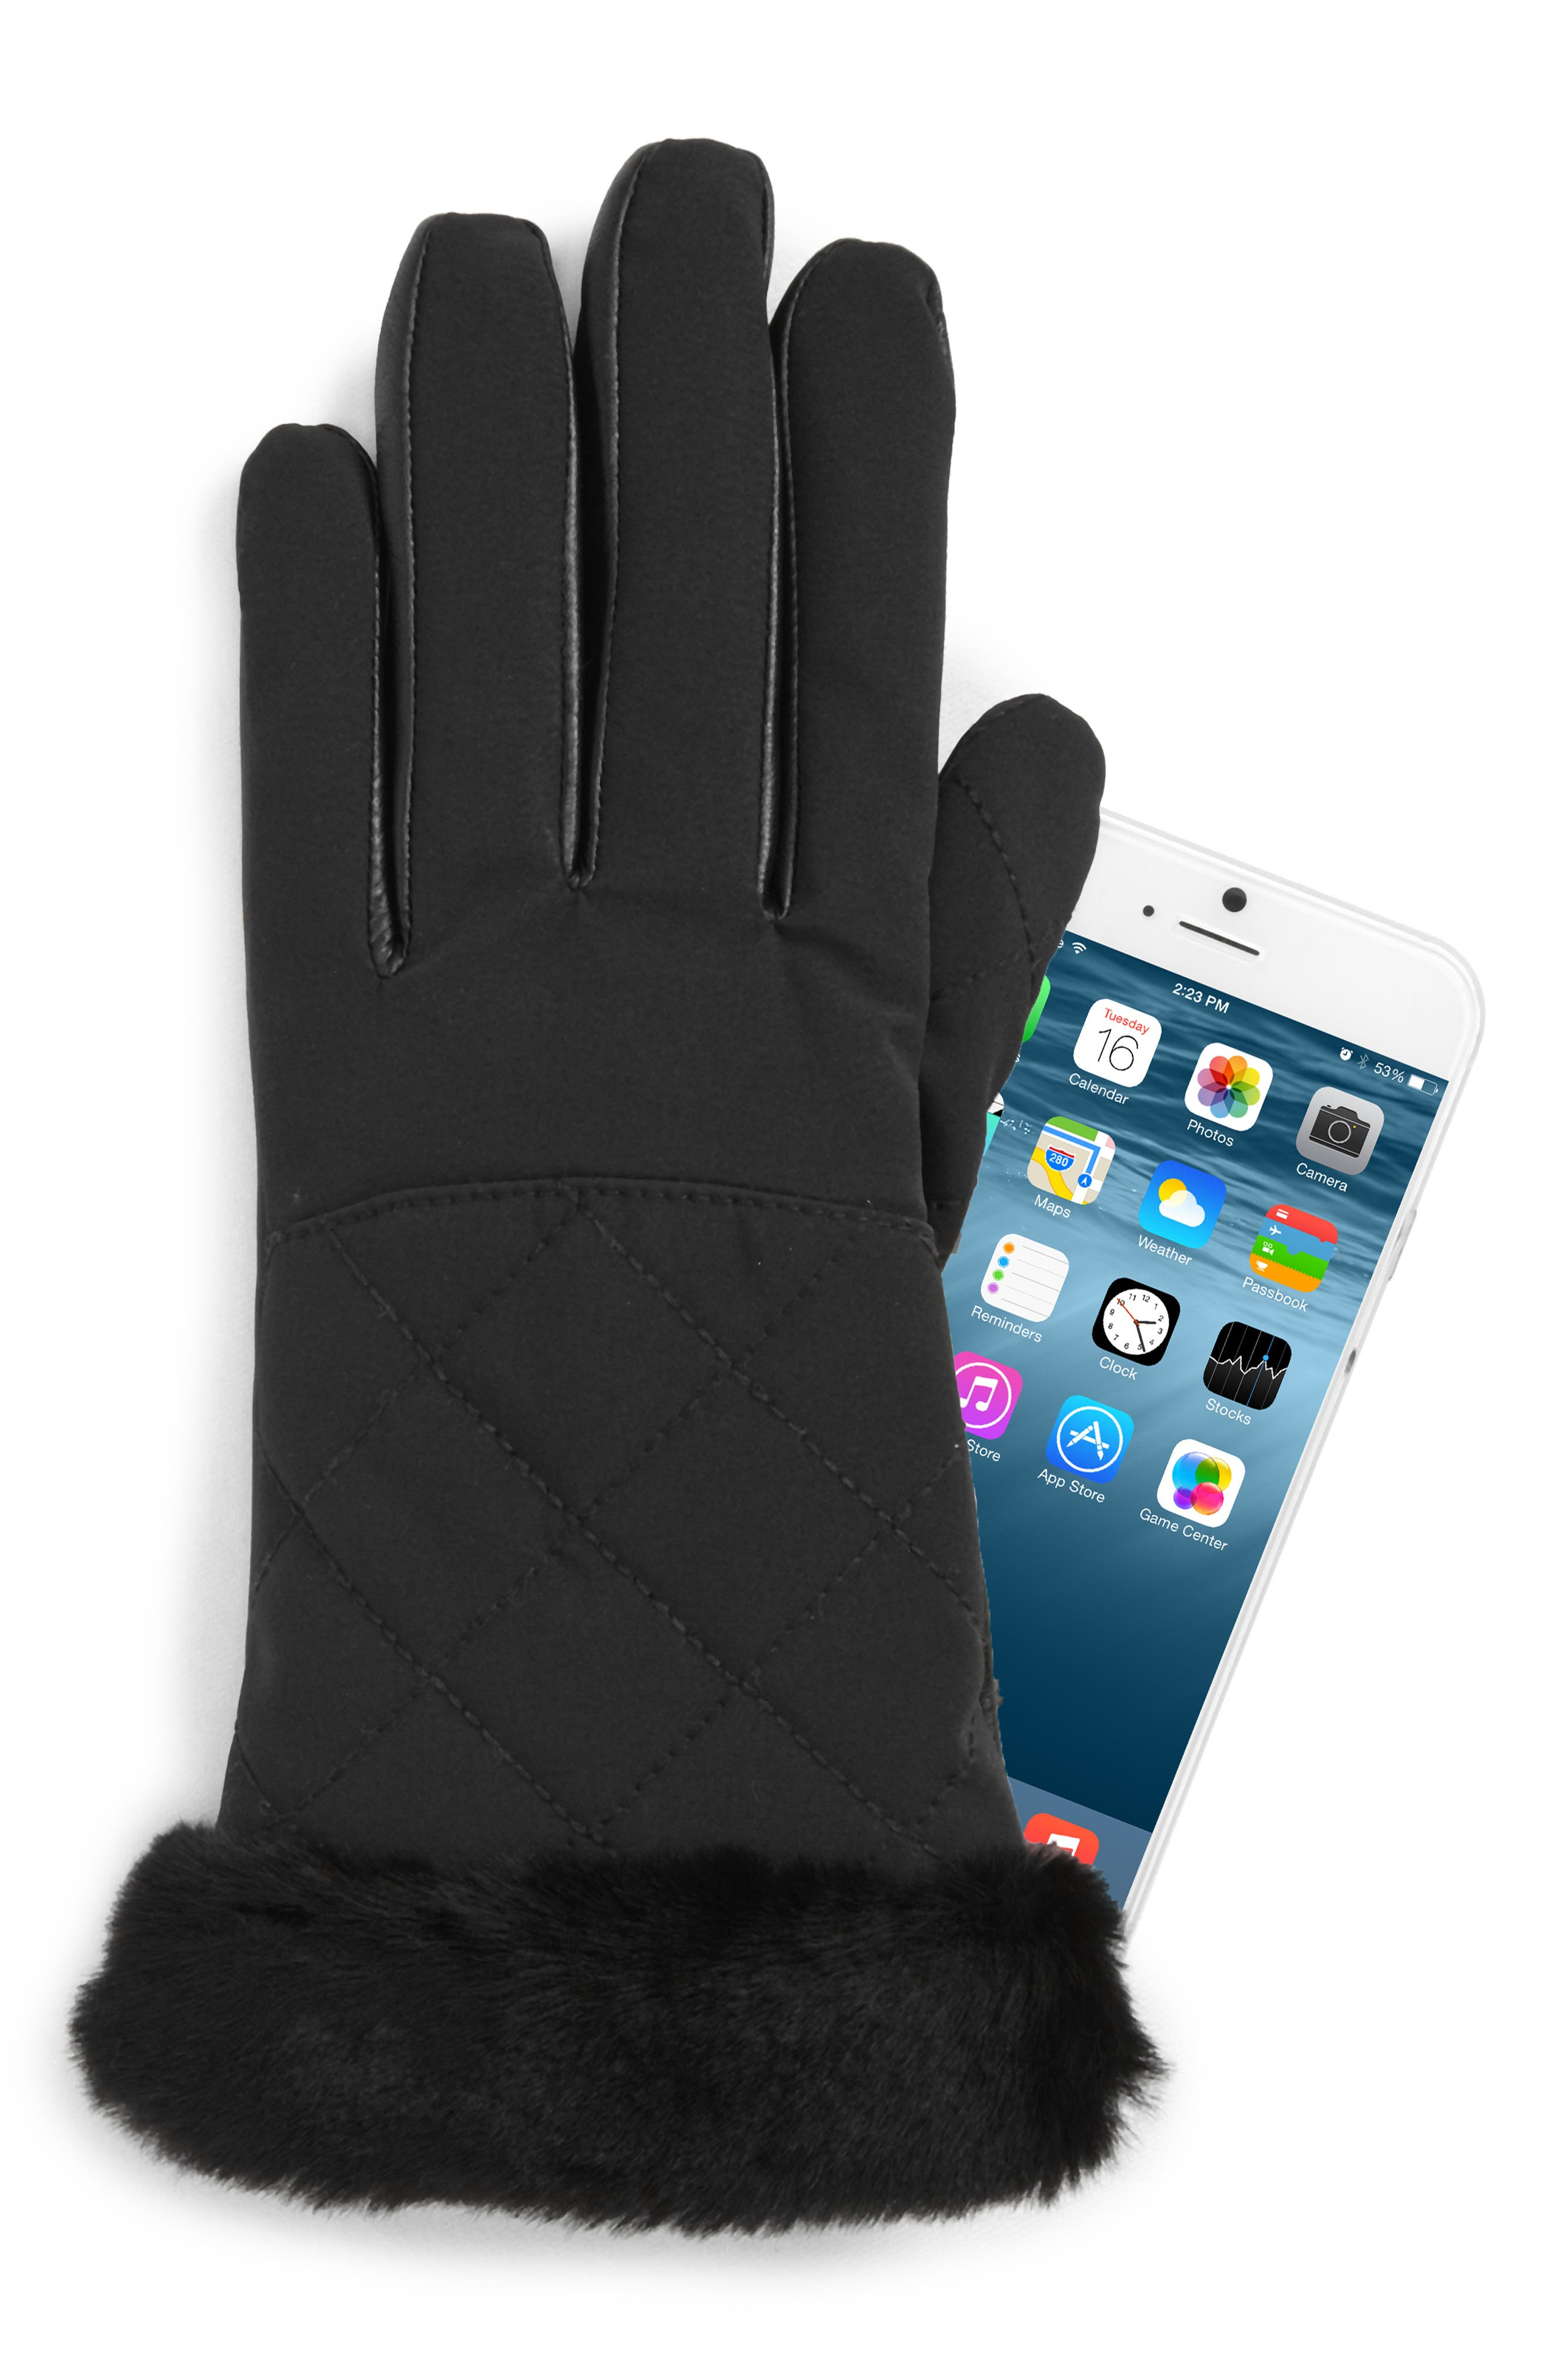 UGG<sup>®</sup> Water Resistant Touchscreen Quilted Nylon, Leather & Genuine Shearling Gloves,                             Alternate thumbnail 3, color,